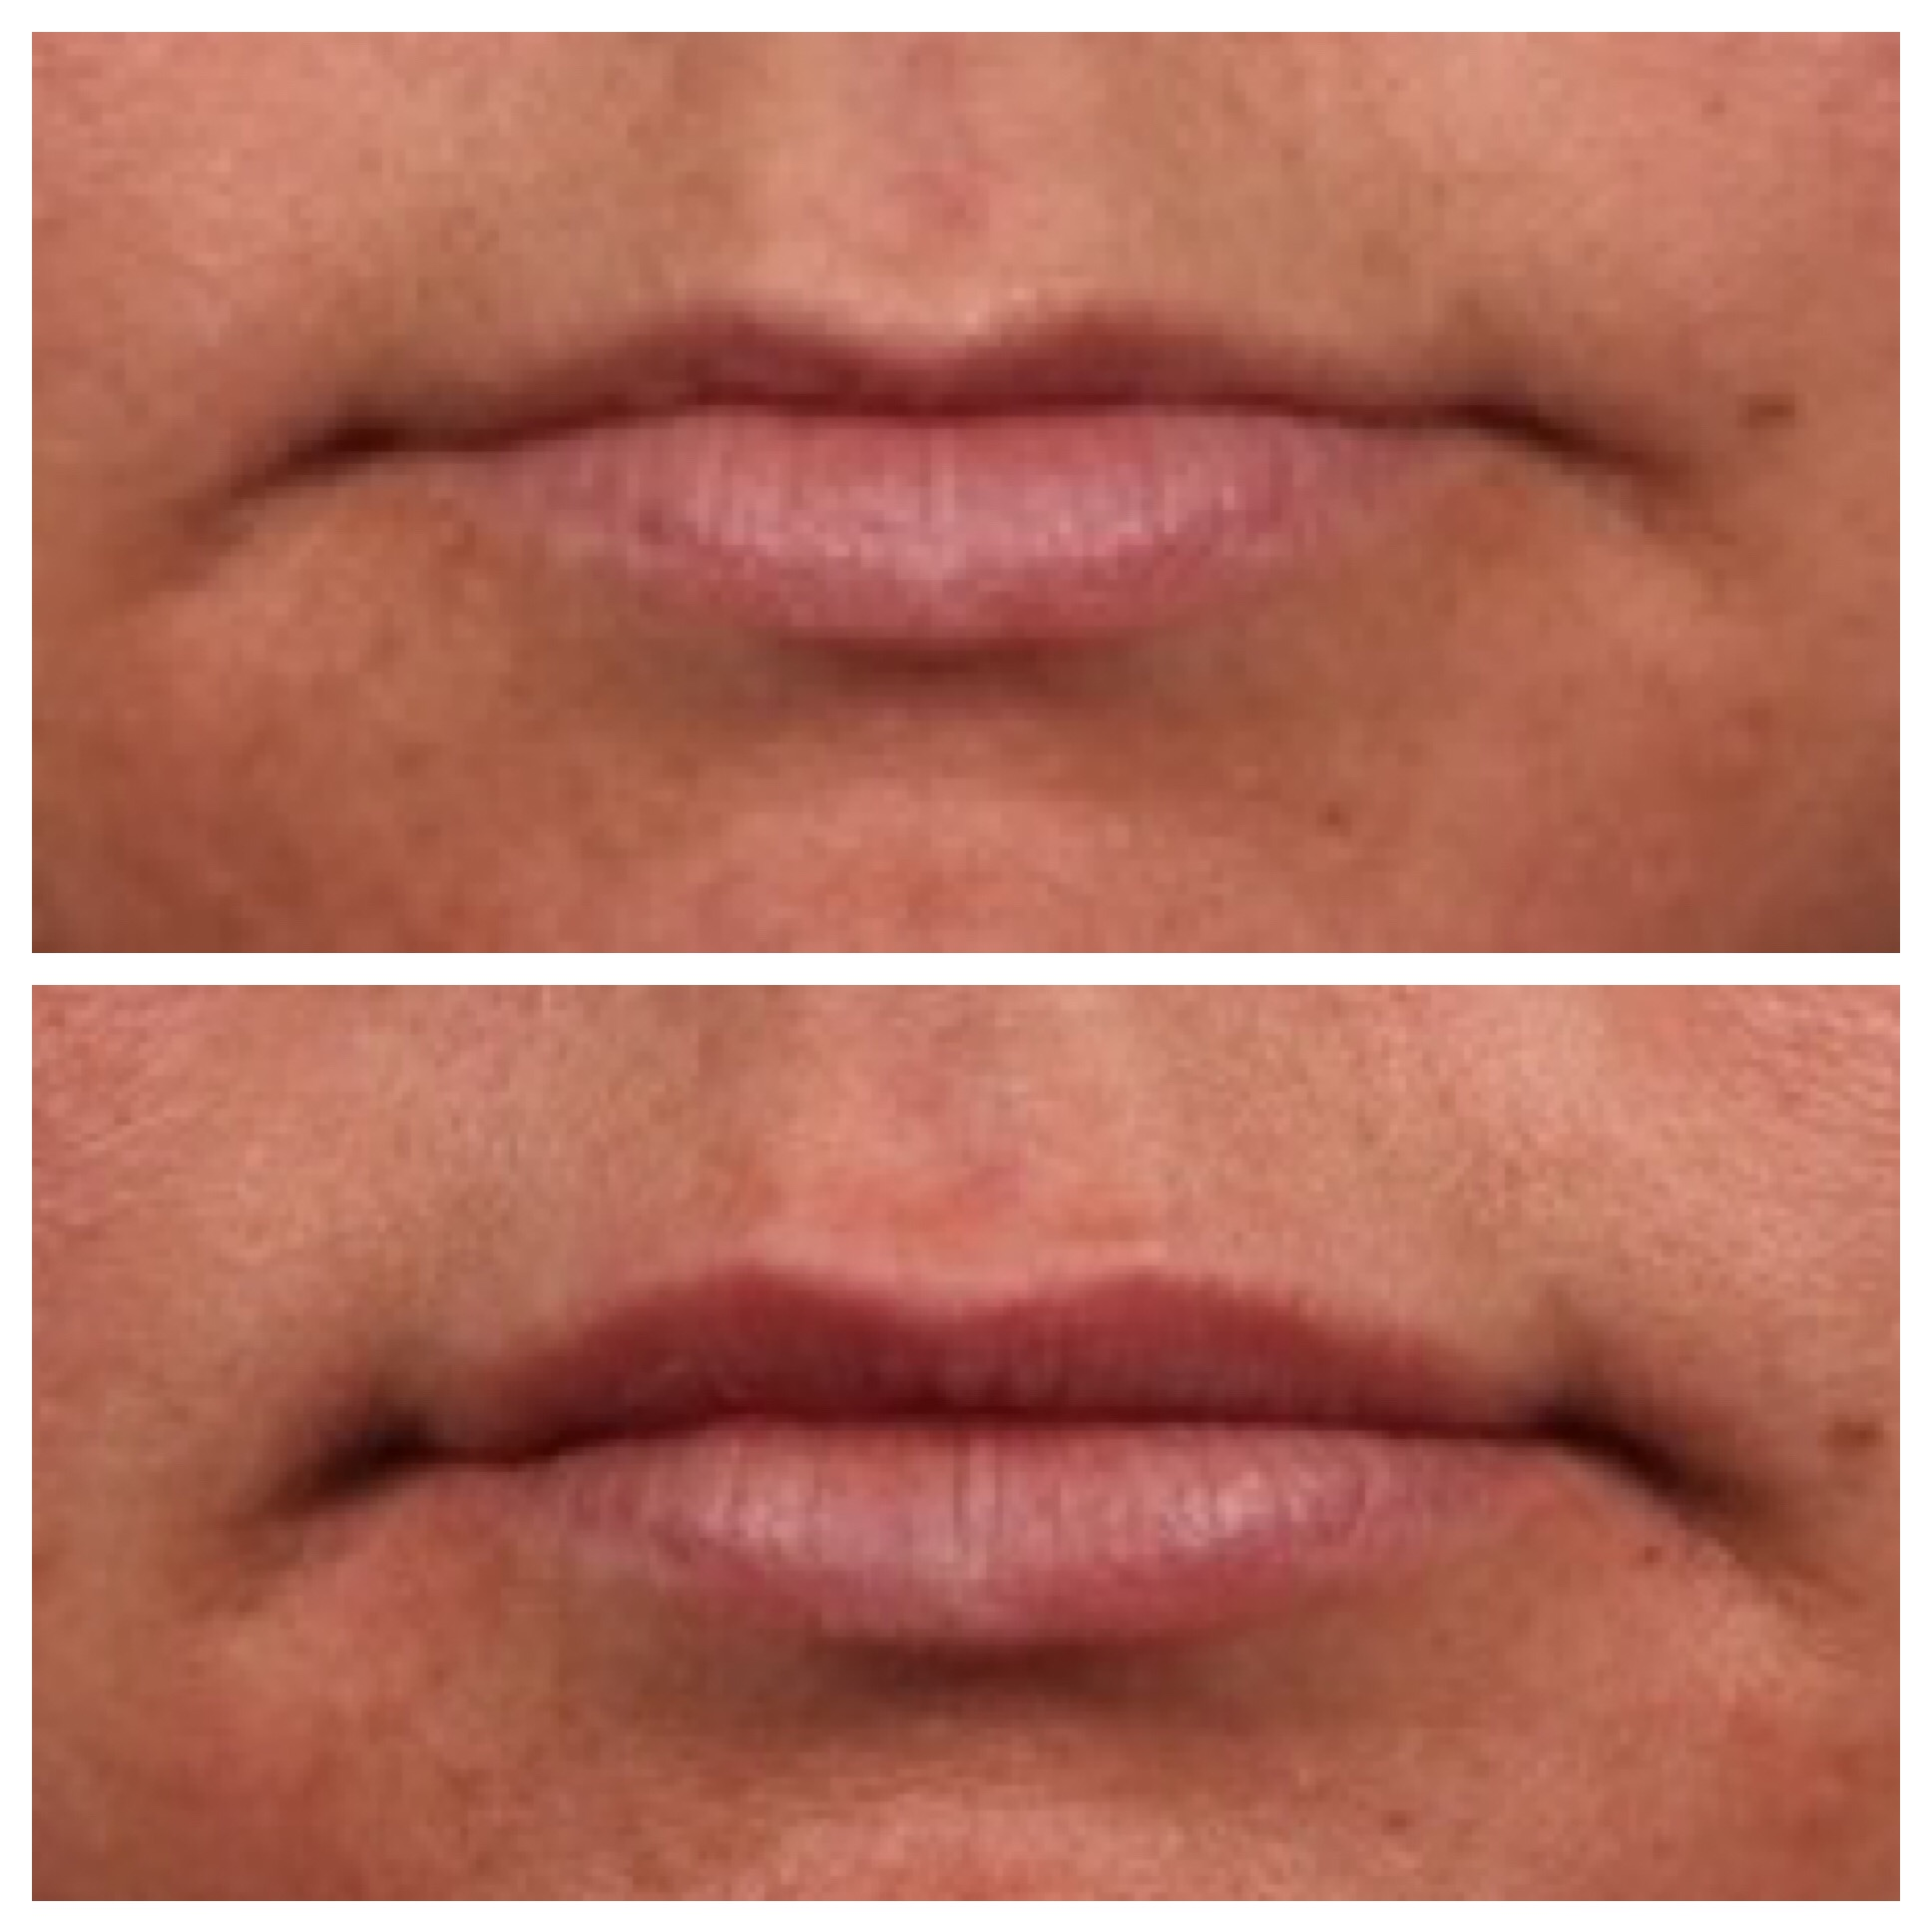 Before (top) and immediately following treatment with Volbella